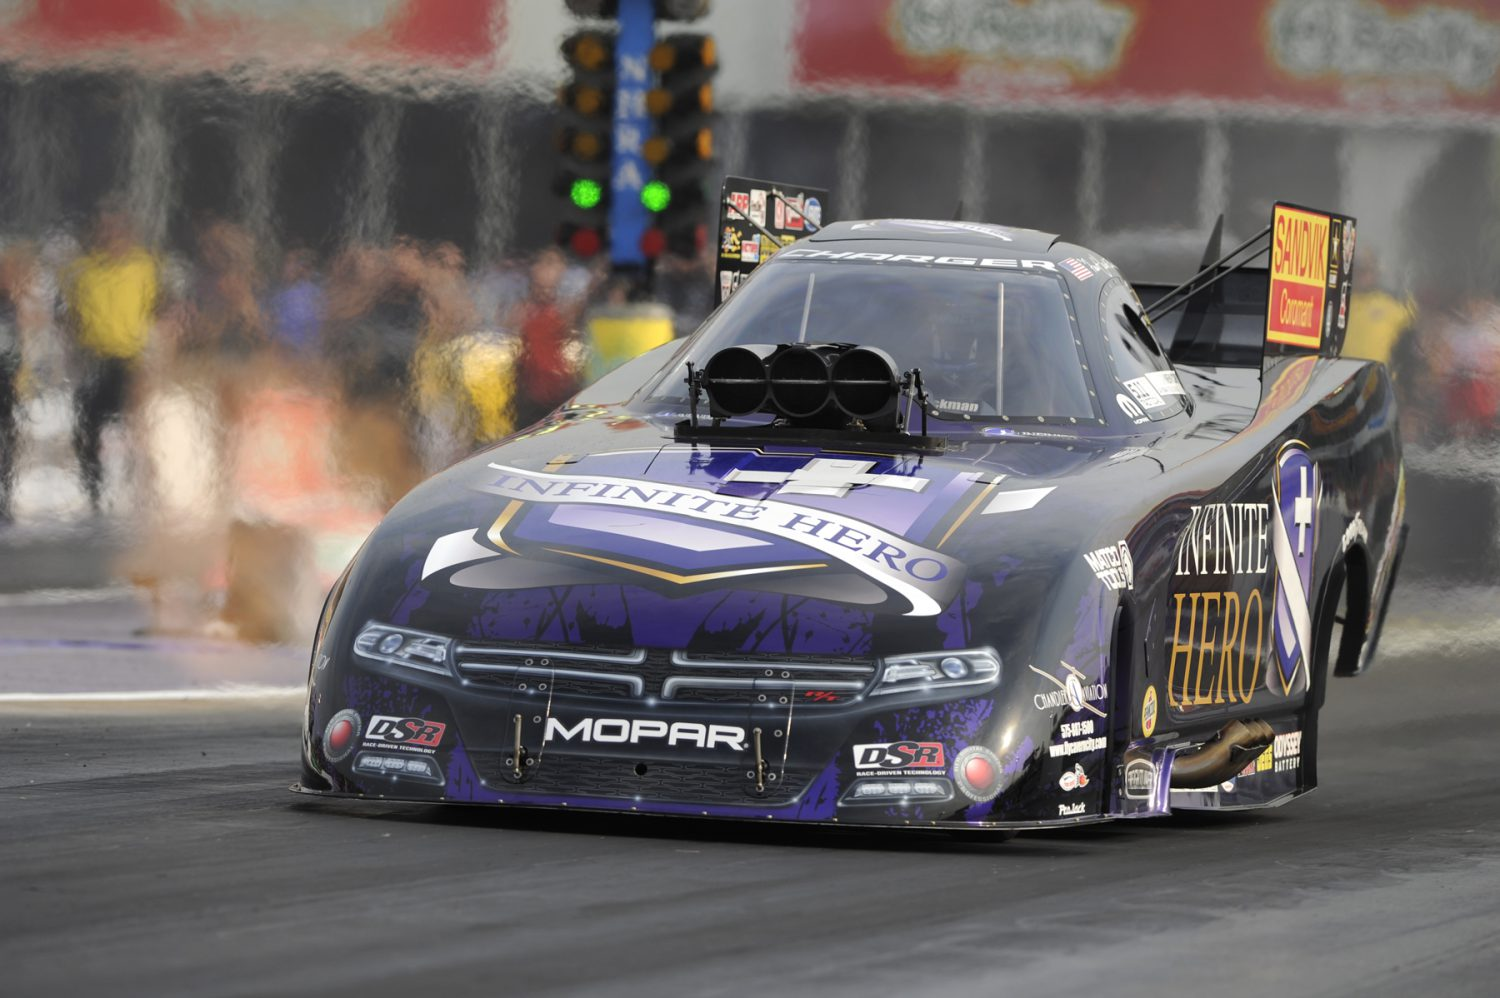 2017 NHRA SpringNationals Tickets Now On Sale to Public | Houston ...